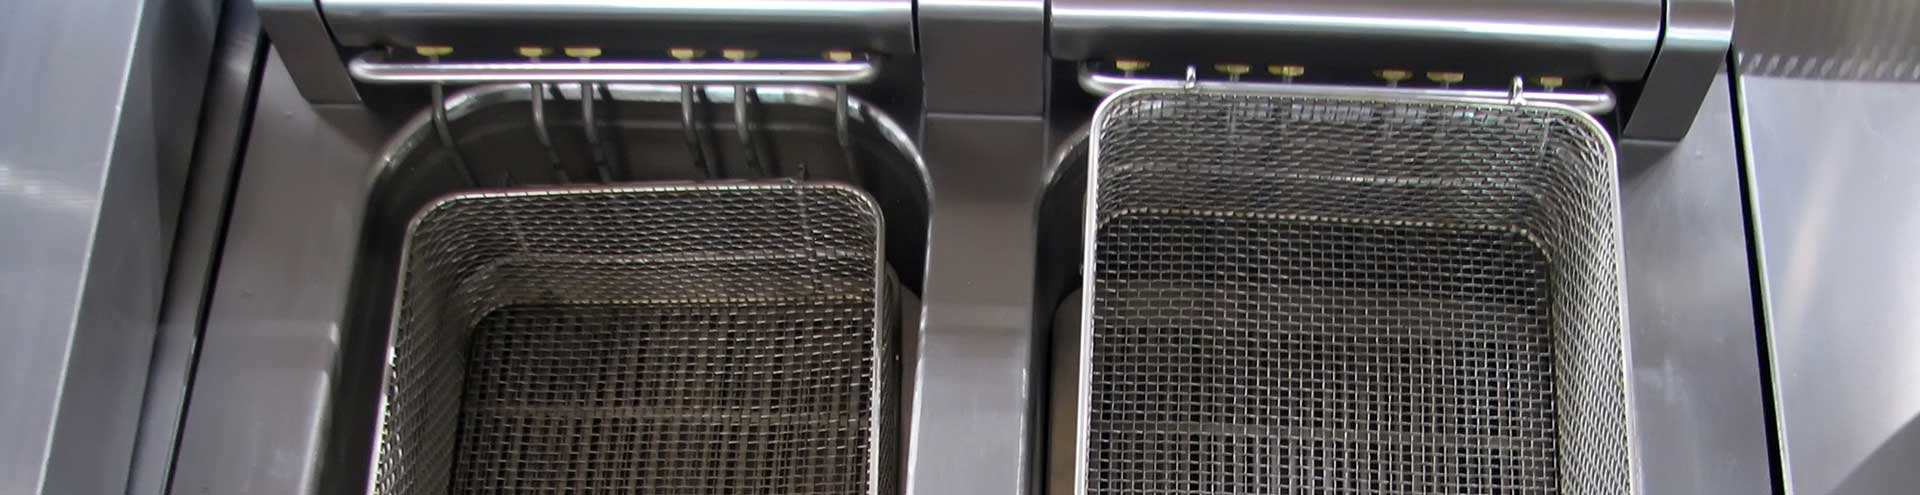 Two deep fryer baskets sitting on a stainless steel kitchen counter.